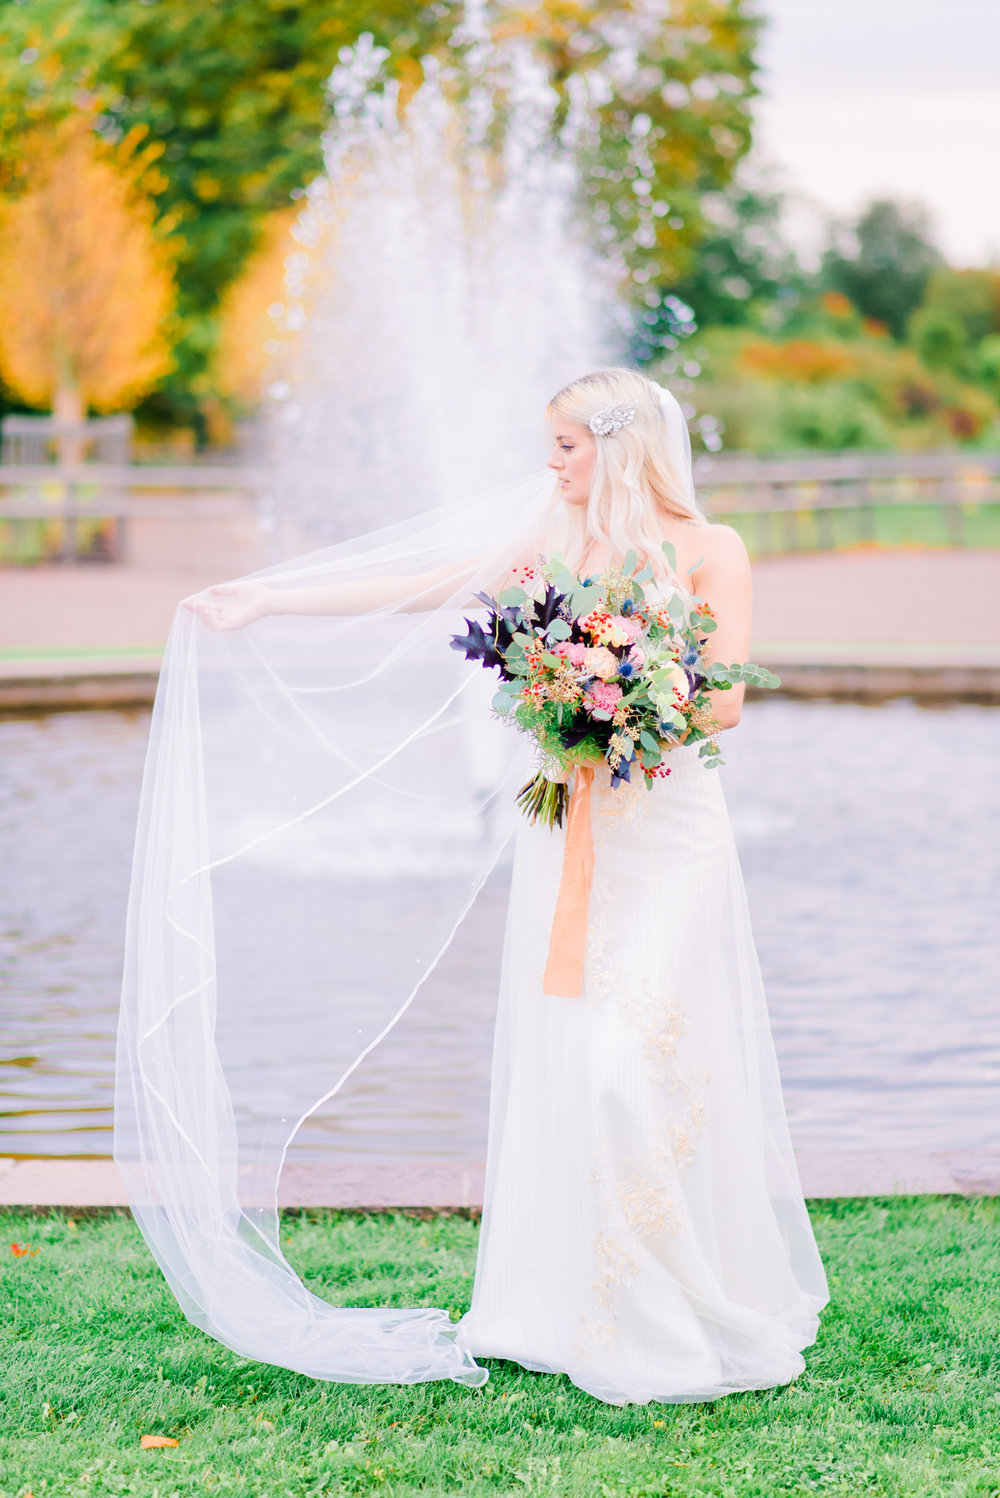 Elegant Organic Fall Swedish Bridal Wedding Styled Shoot - Erika Alvarenga Photography-6.jpg